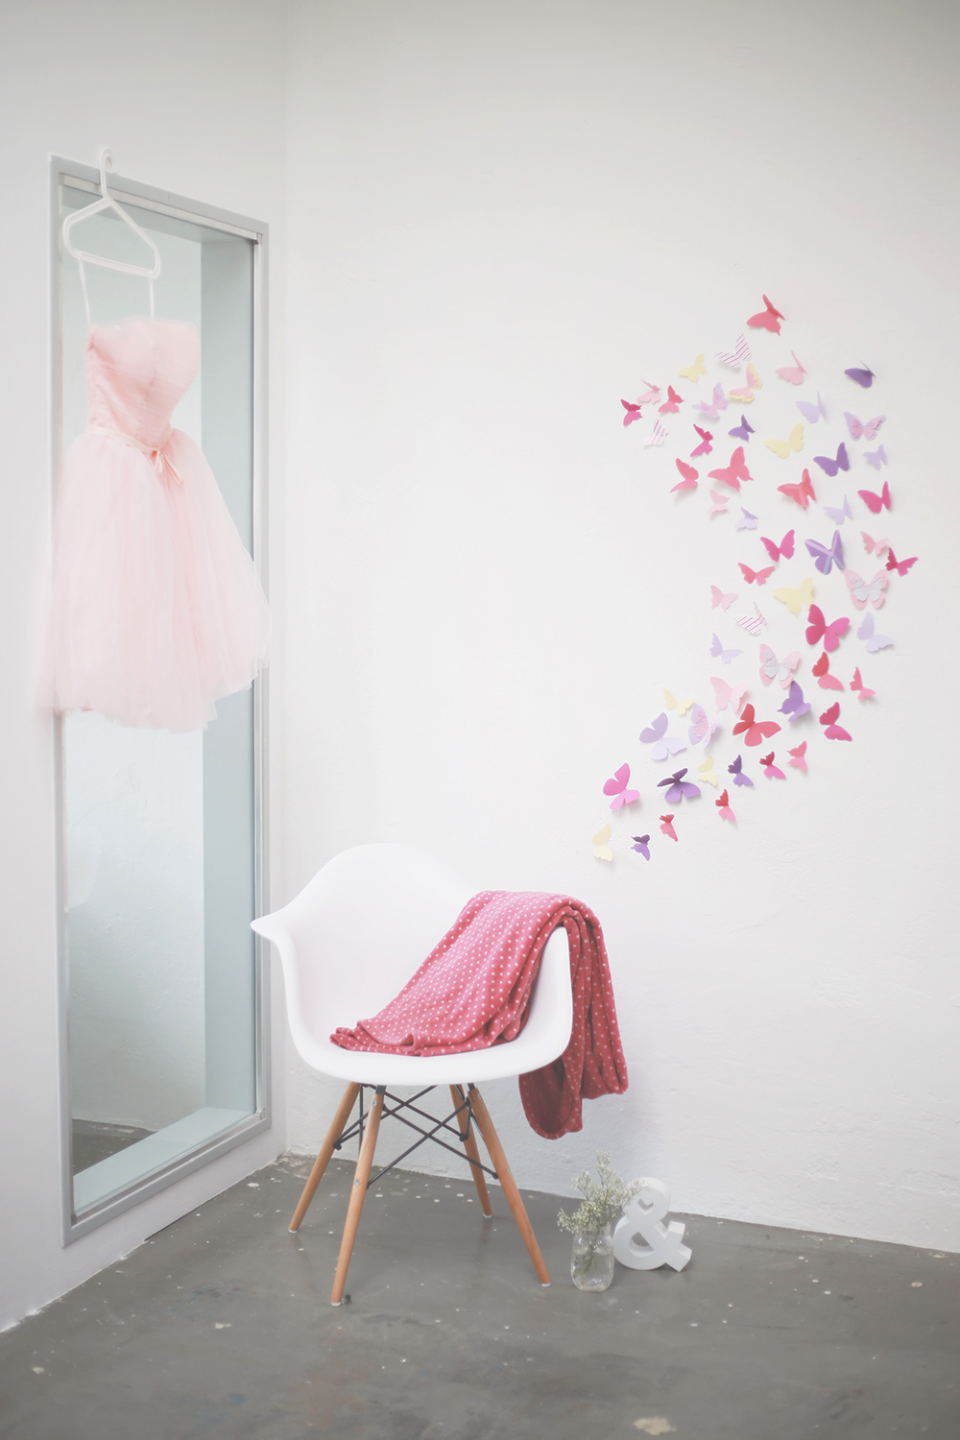 Schmetterling Kinderzimmer Jessis Diy Tonkarton Schmetterlinge Als Wanddeko For The Home